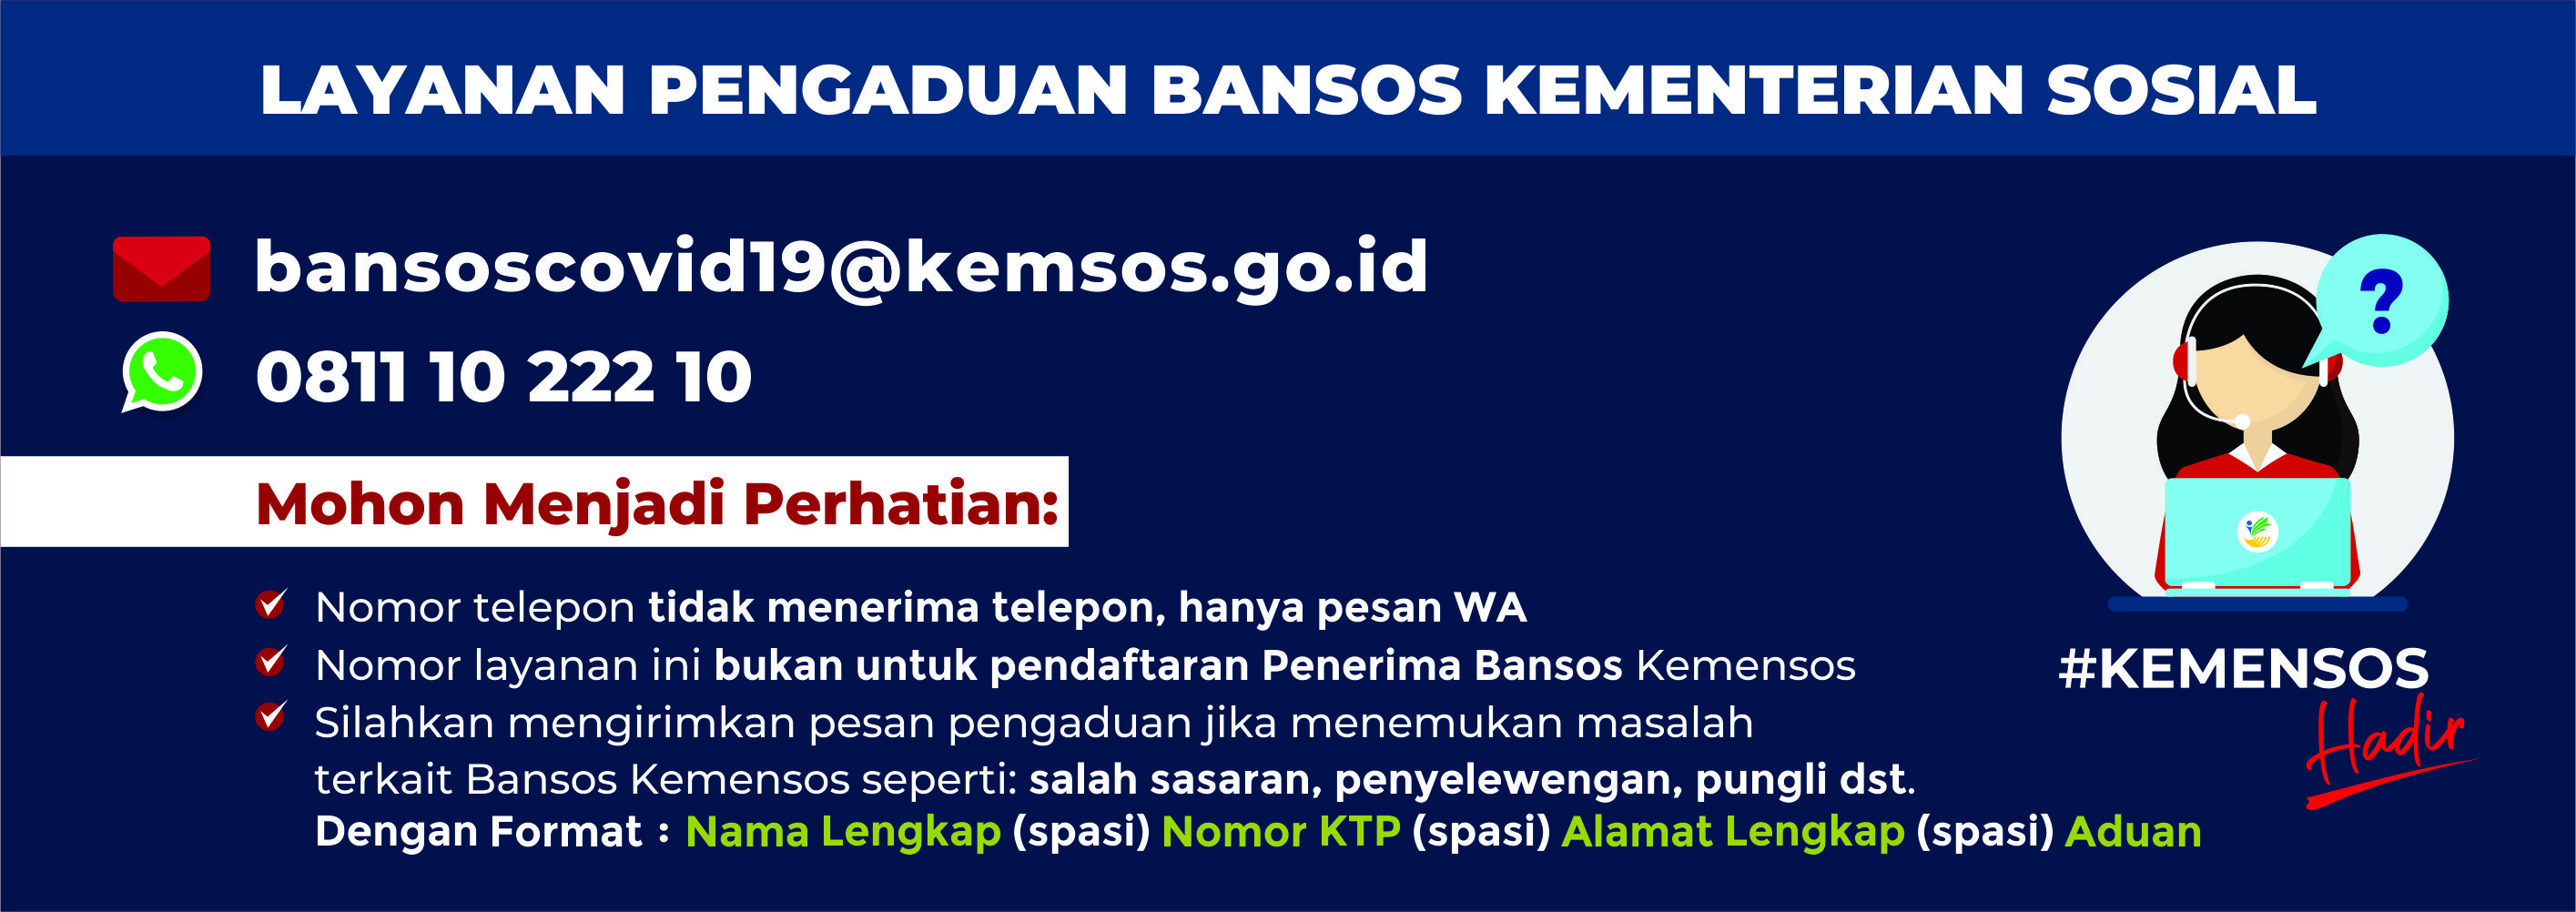 Contact Center Pengaduan Bansos Covid19